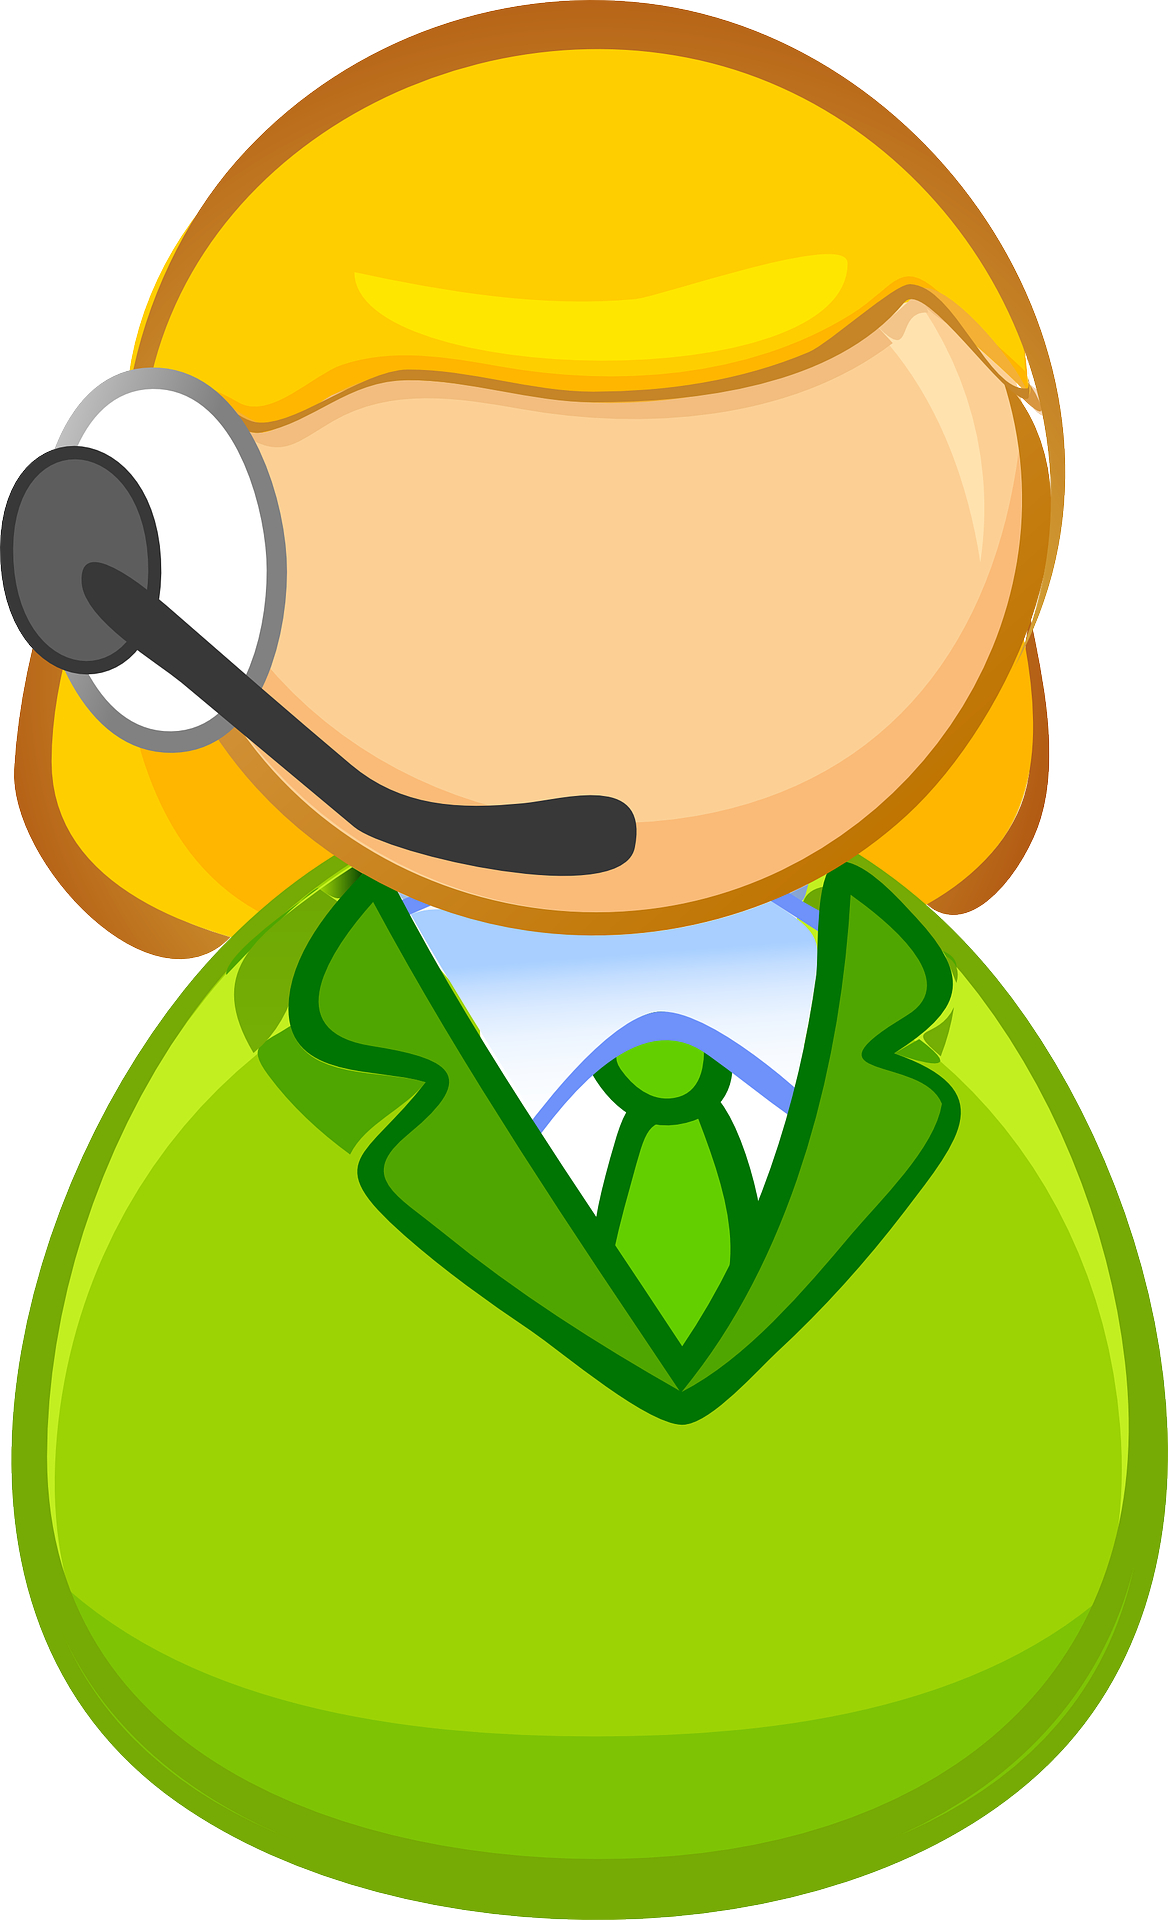 call center -symbol of Customer service agents vector